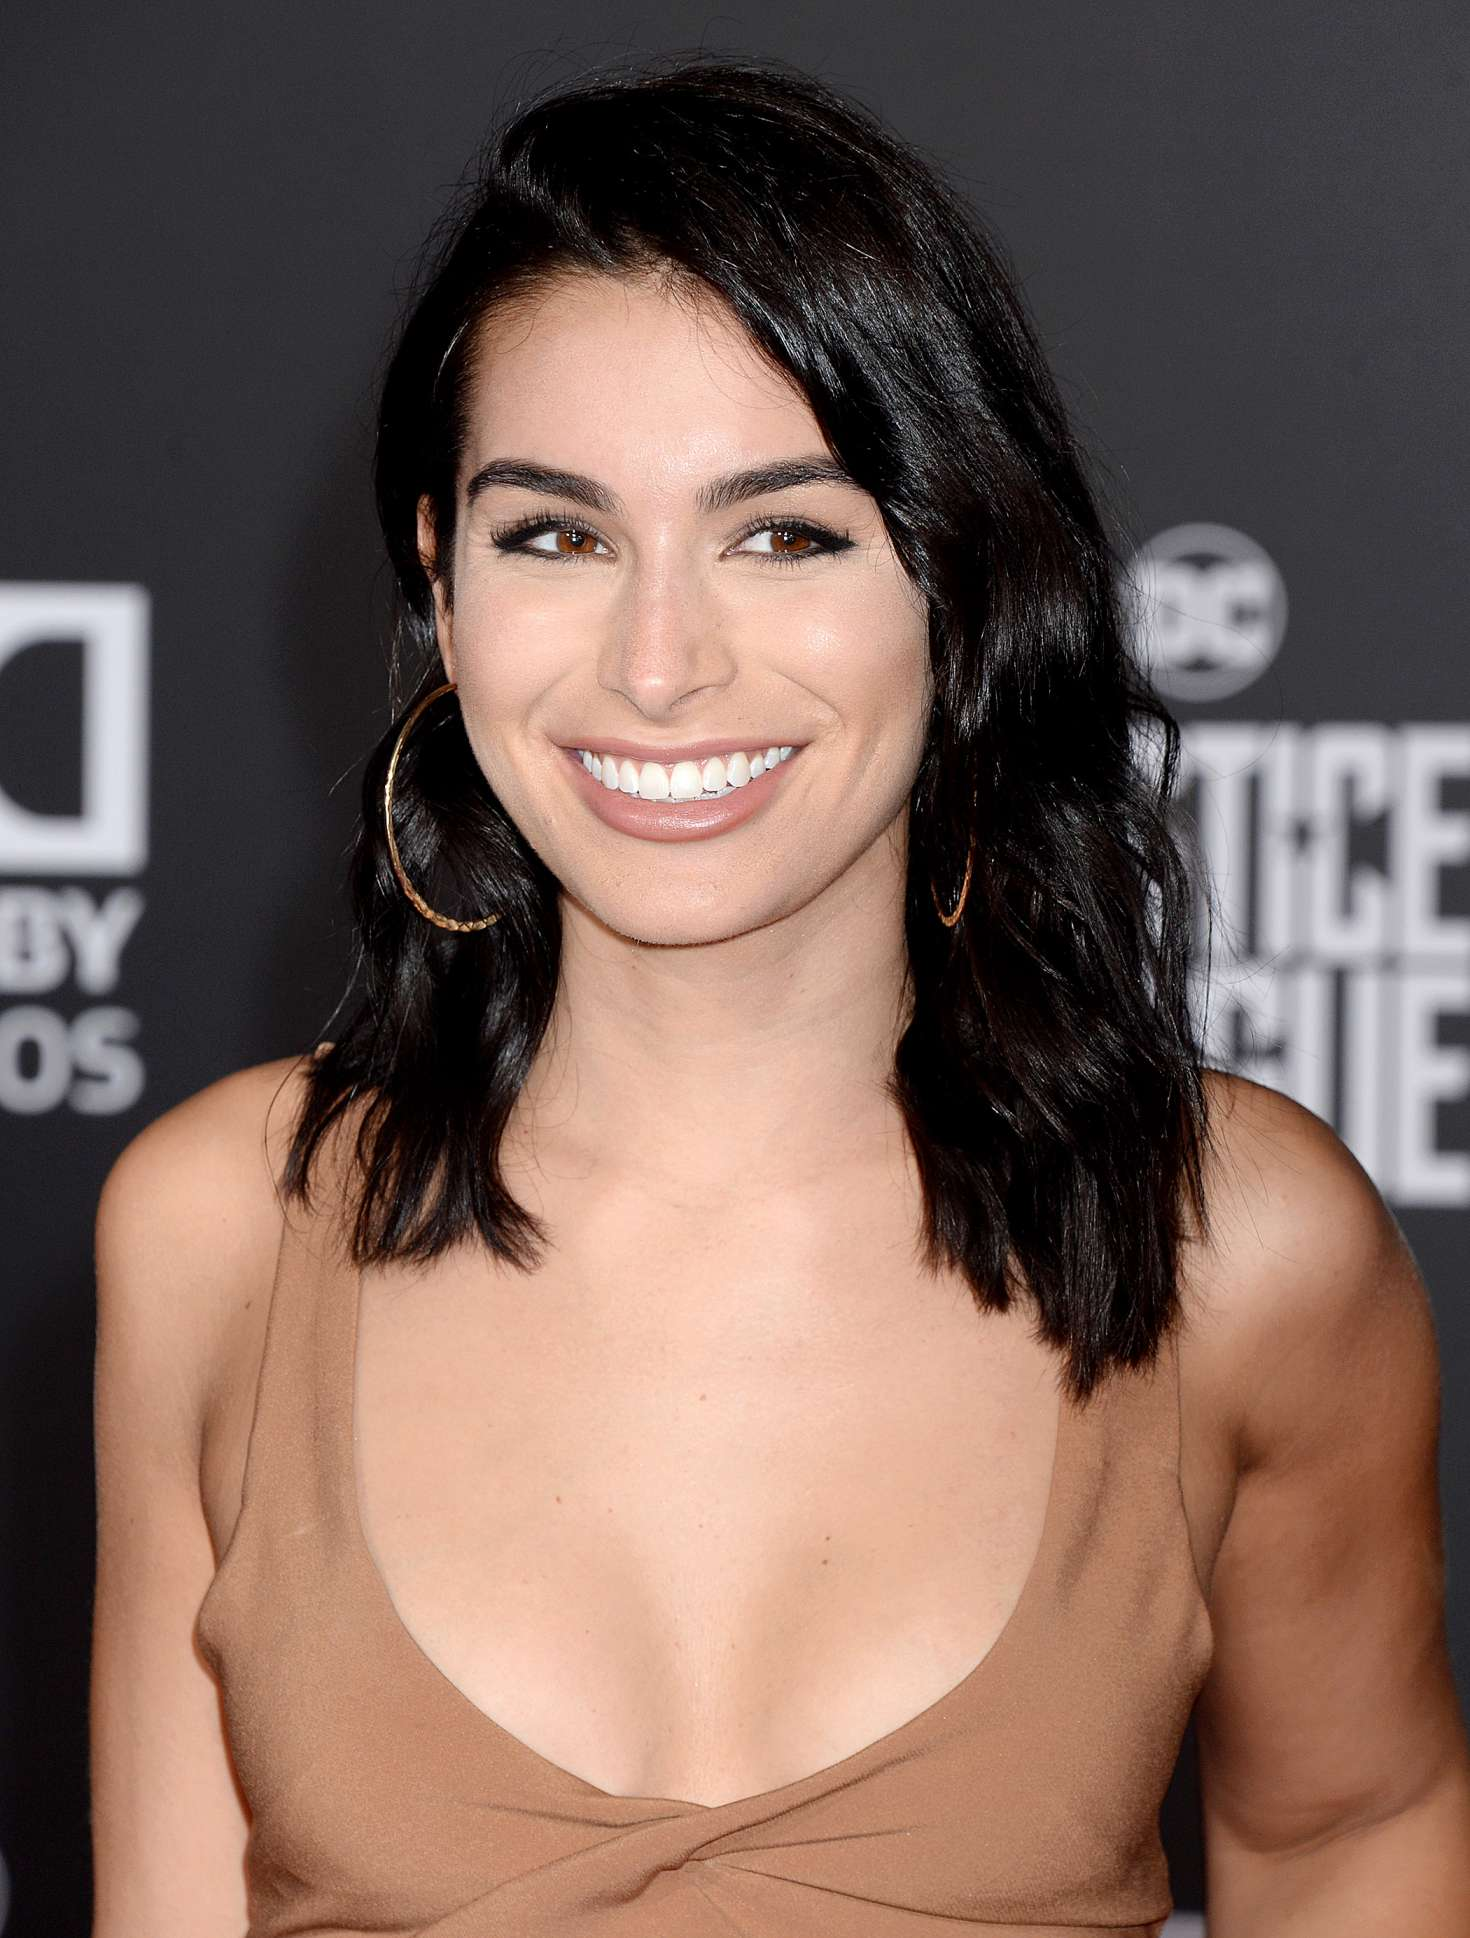 Ashley Iaconetti 2017 : Ashley Iaconetti: Justice League Premiere in LA -05